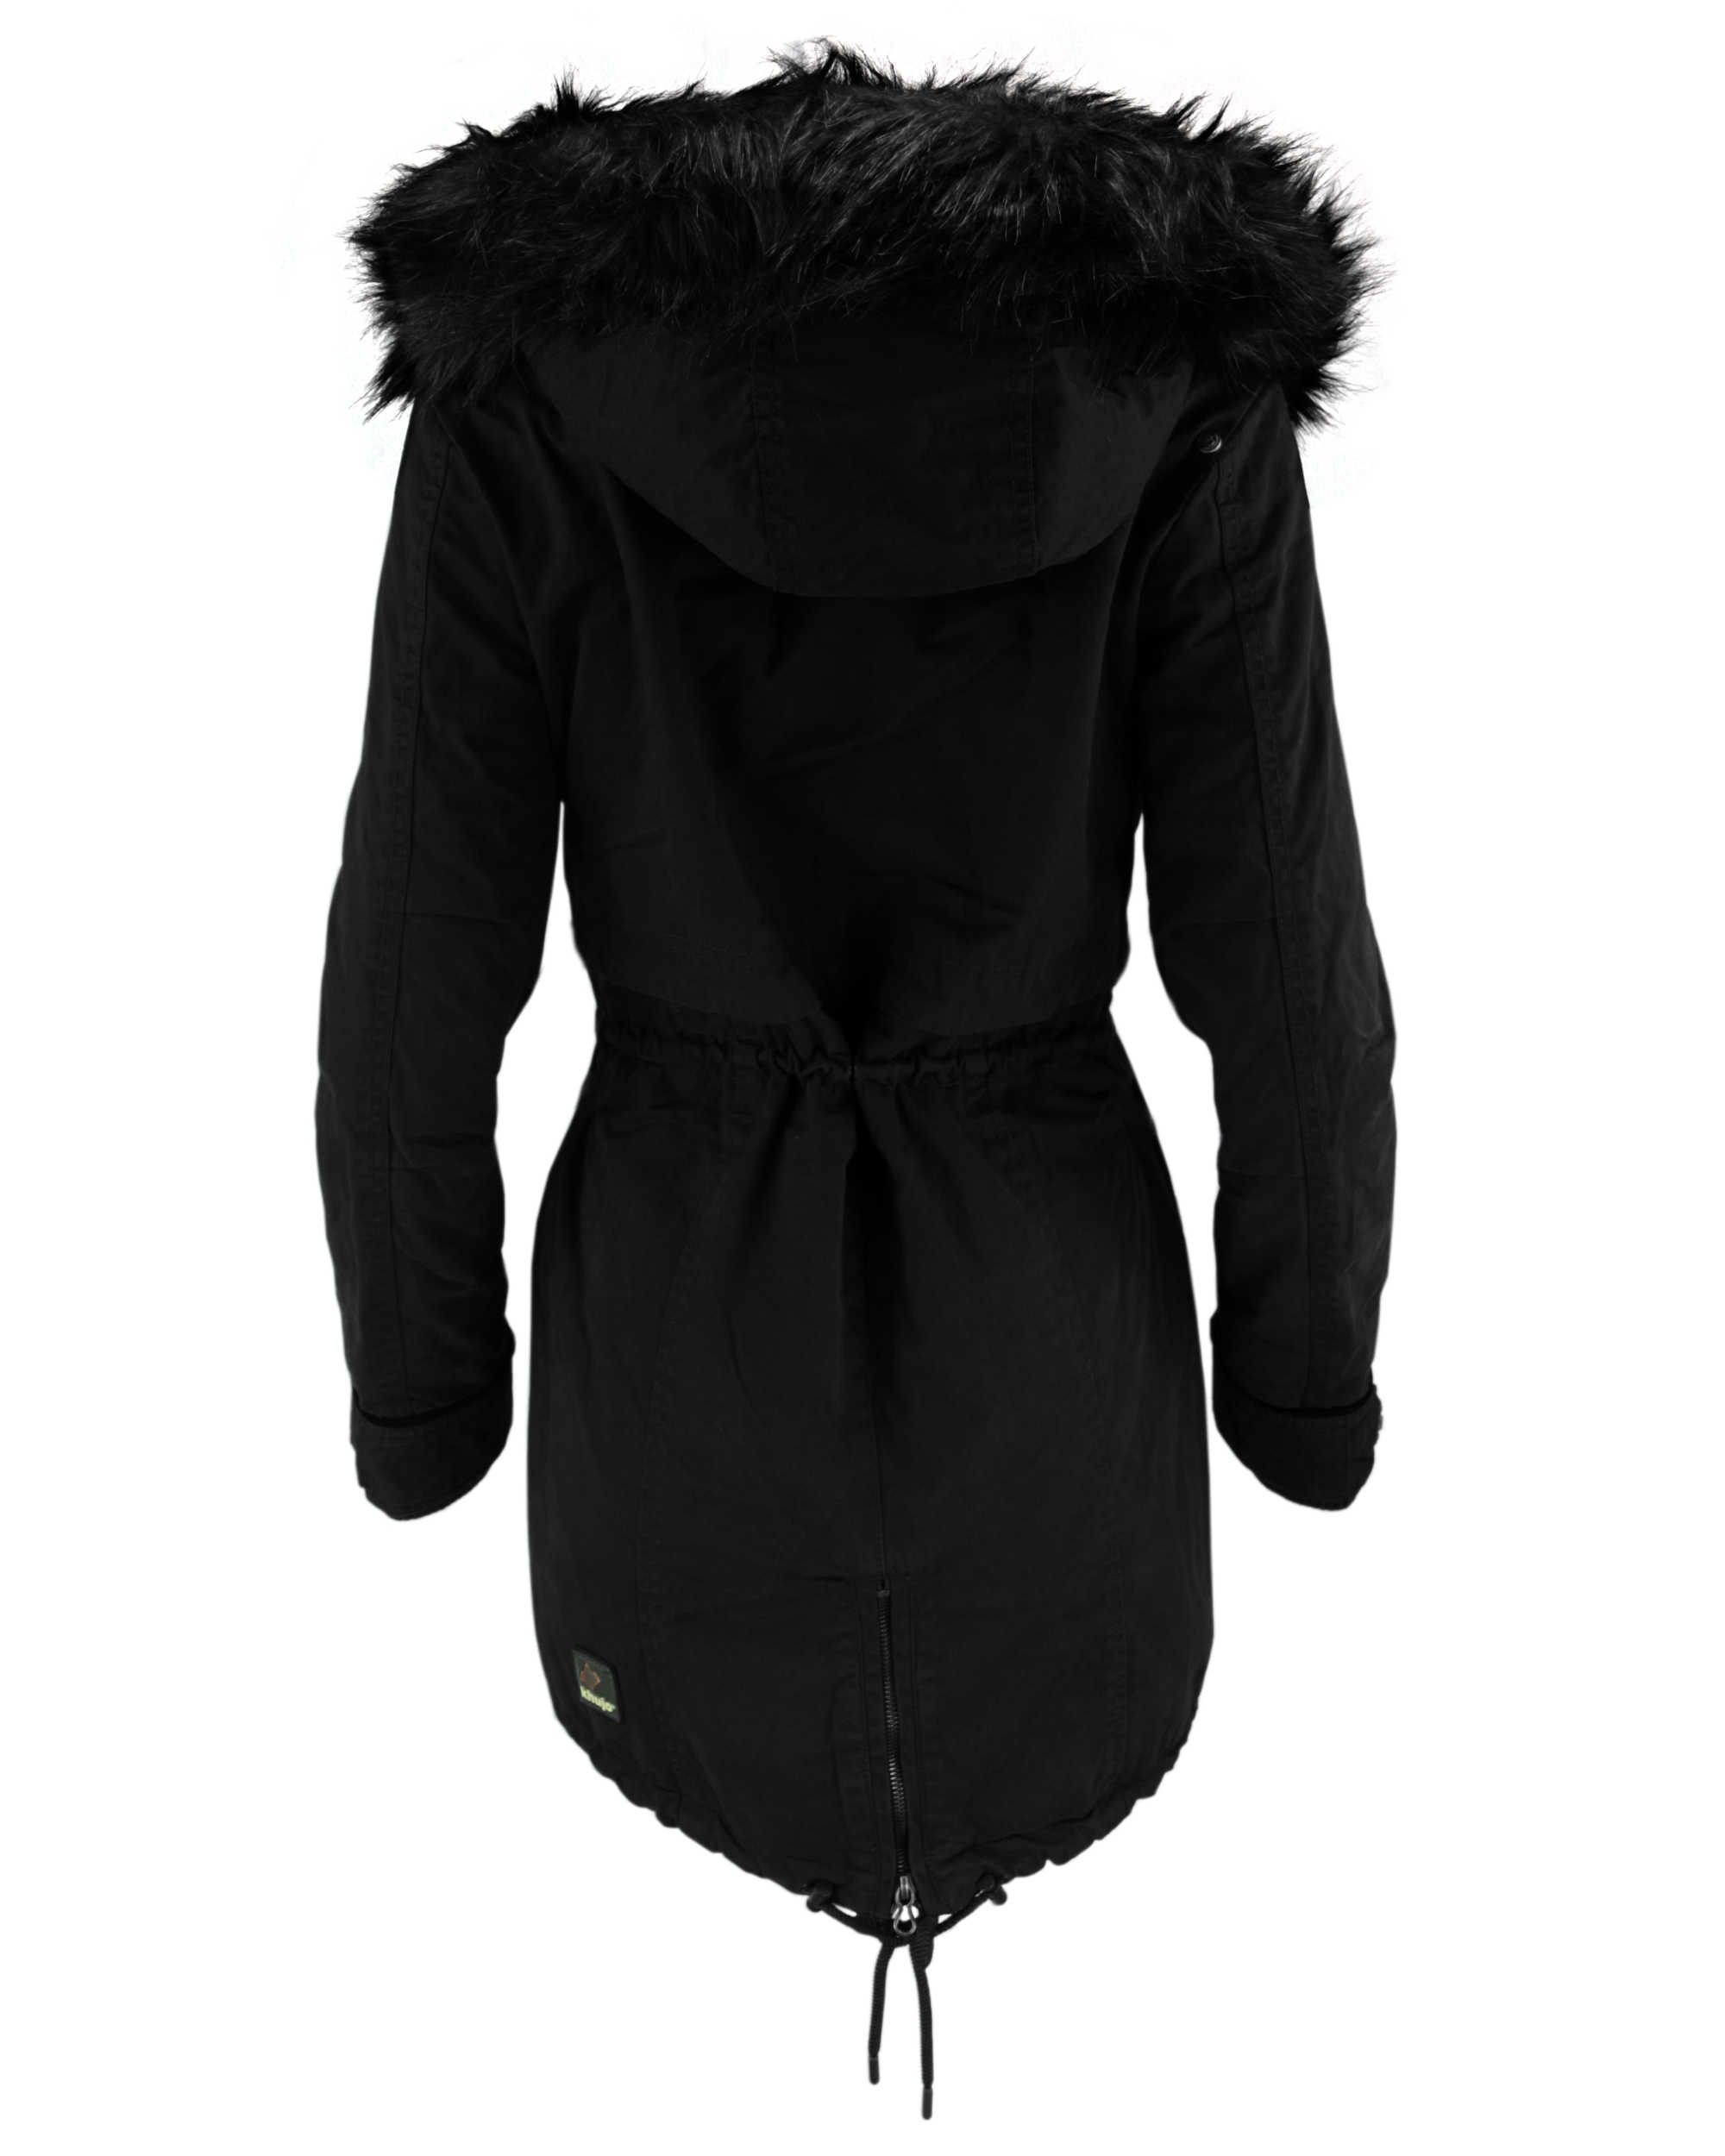 reputable site b3fdf 775a3 KHUJO Damen Wintermantel Mantel Jacke FREJA Winter Parka schwarz Kapuze Fell